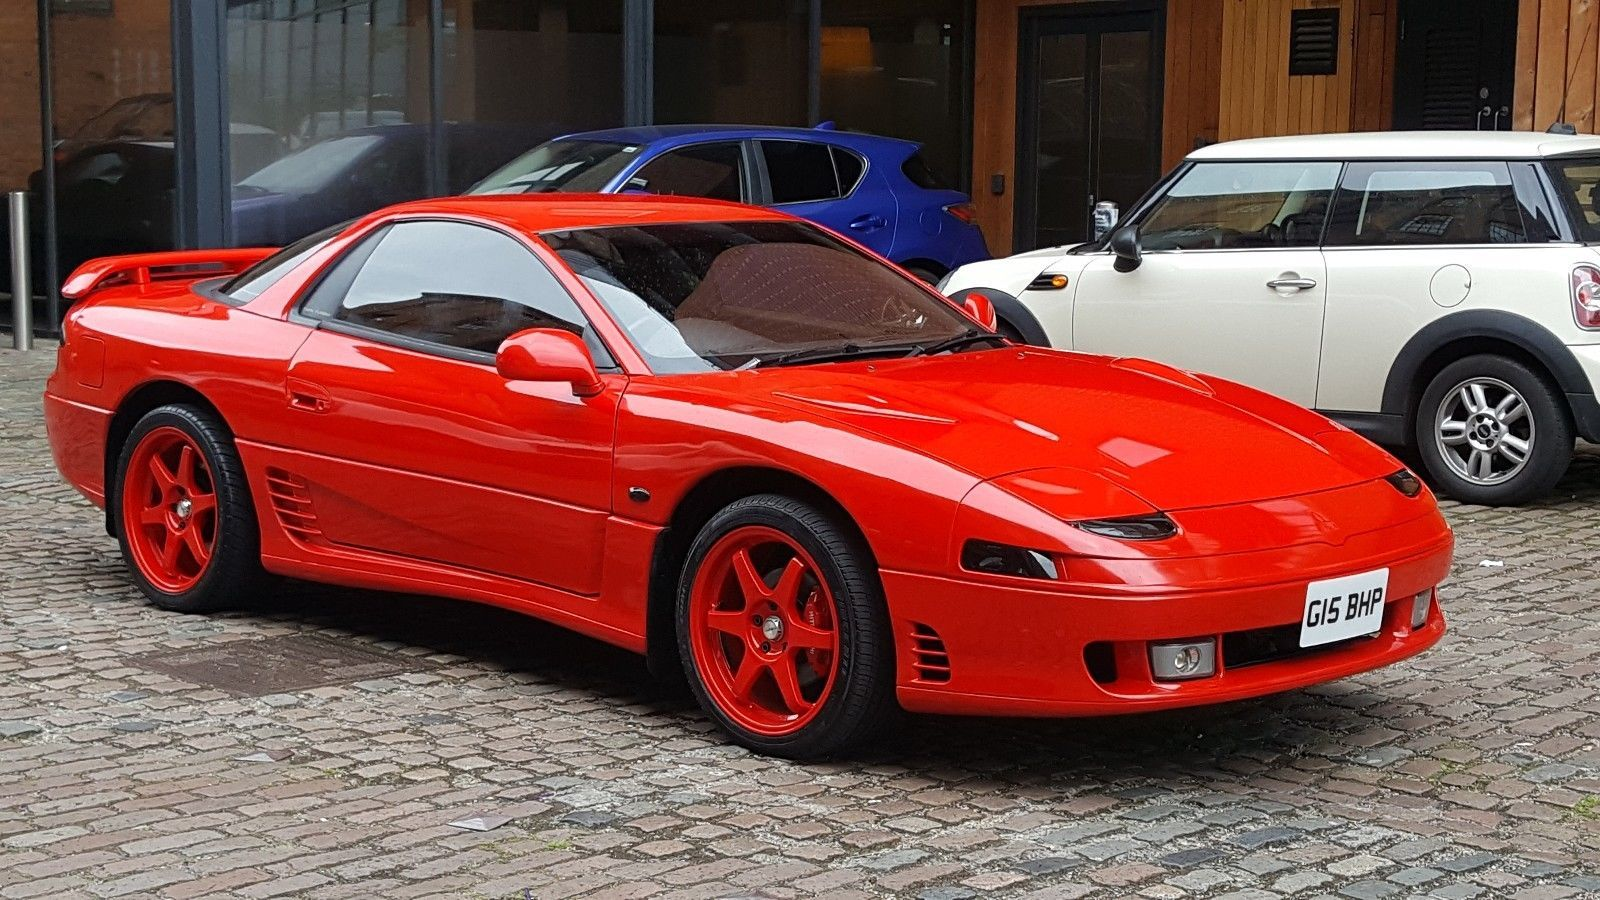 Mitsubishi gto twin turbo